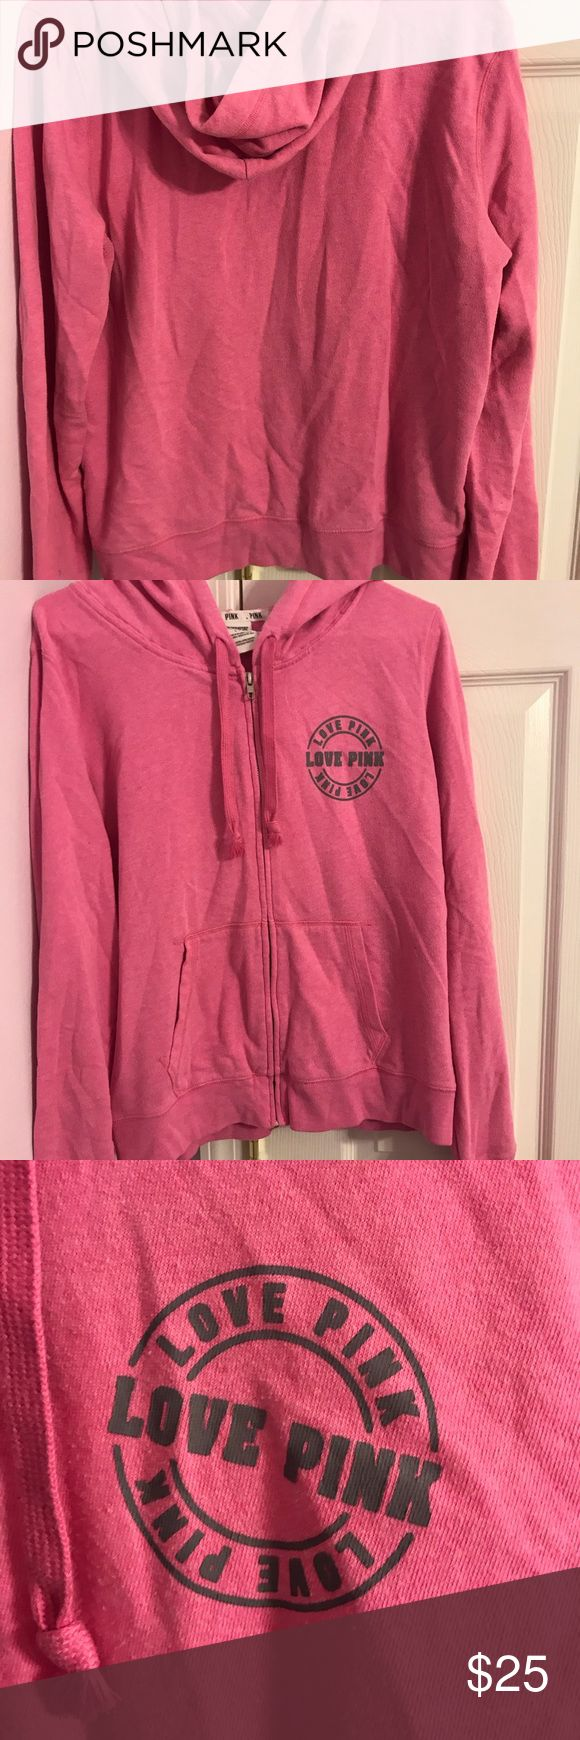 PINK zip up sweater PINK pink zip-up with dark gray writing, no signs of wear great condition worn very lightly , the wrinkles will be taken out before shipping, bundle to save or make an offer! PINK Tops Sweatshirts & Hoodies